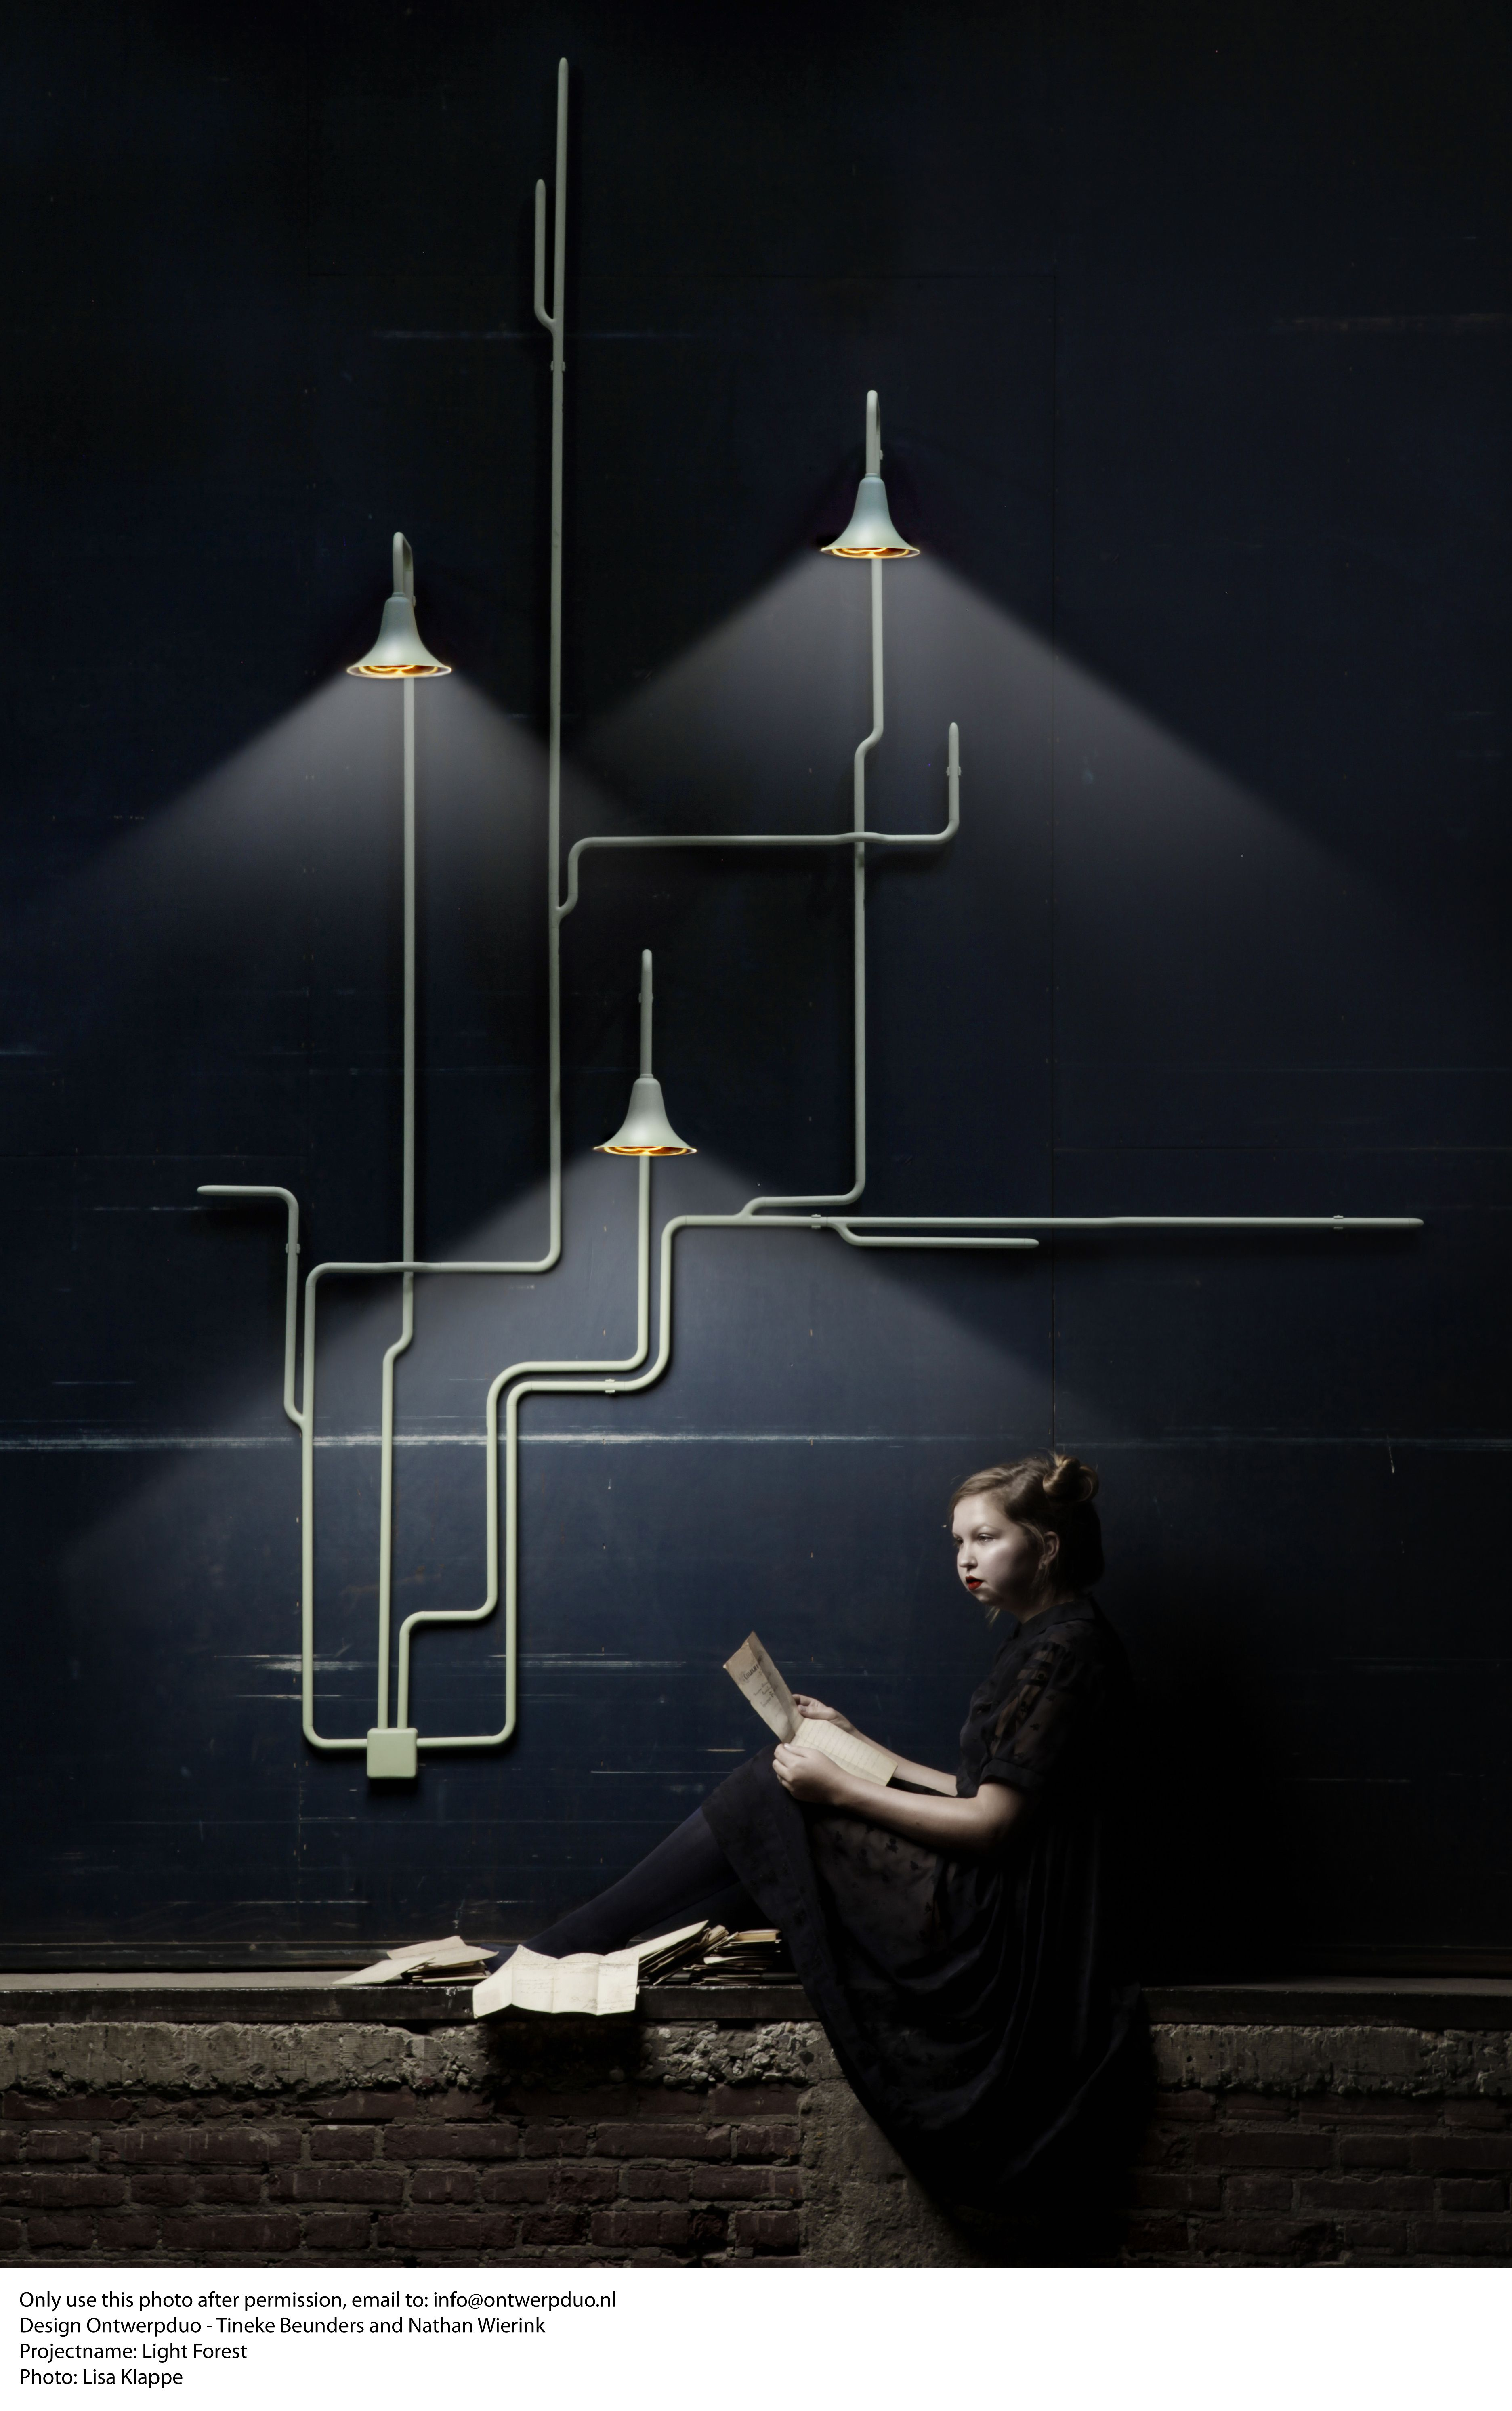 Beautiful lighting against a deep coloured wall. & Sigurd Lewerentz style lamp conduits. | Walls Lights and Lamp shades azcodes.com